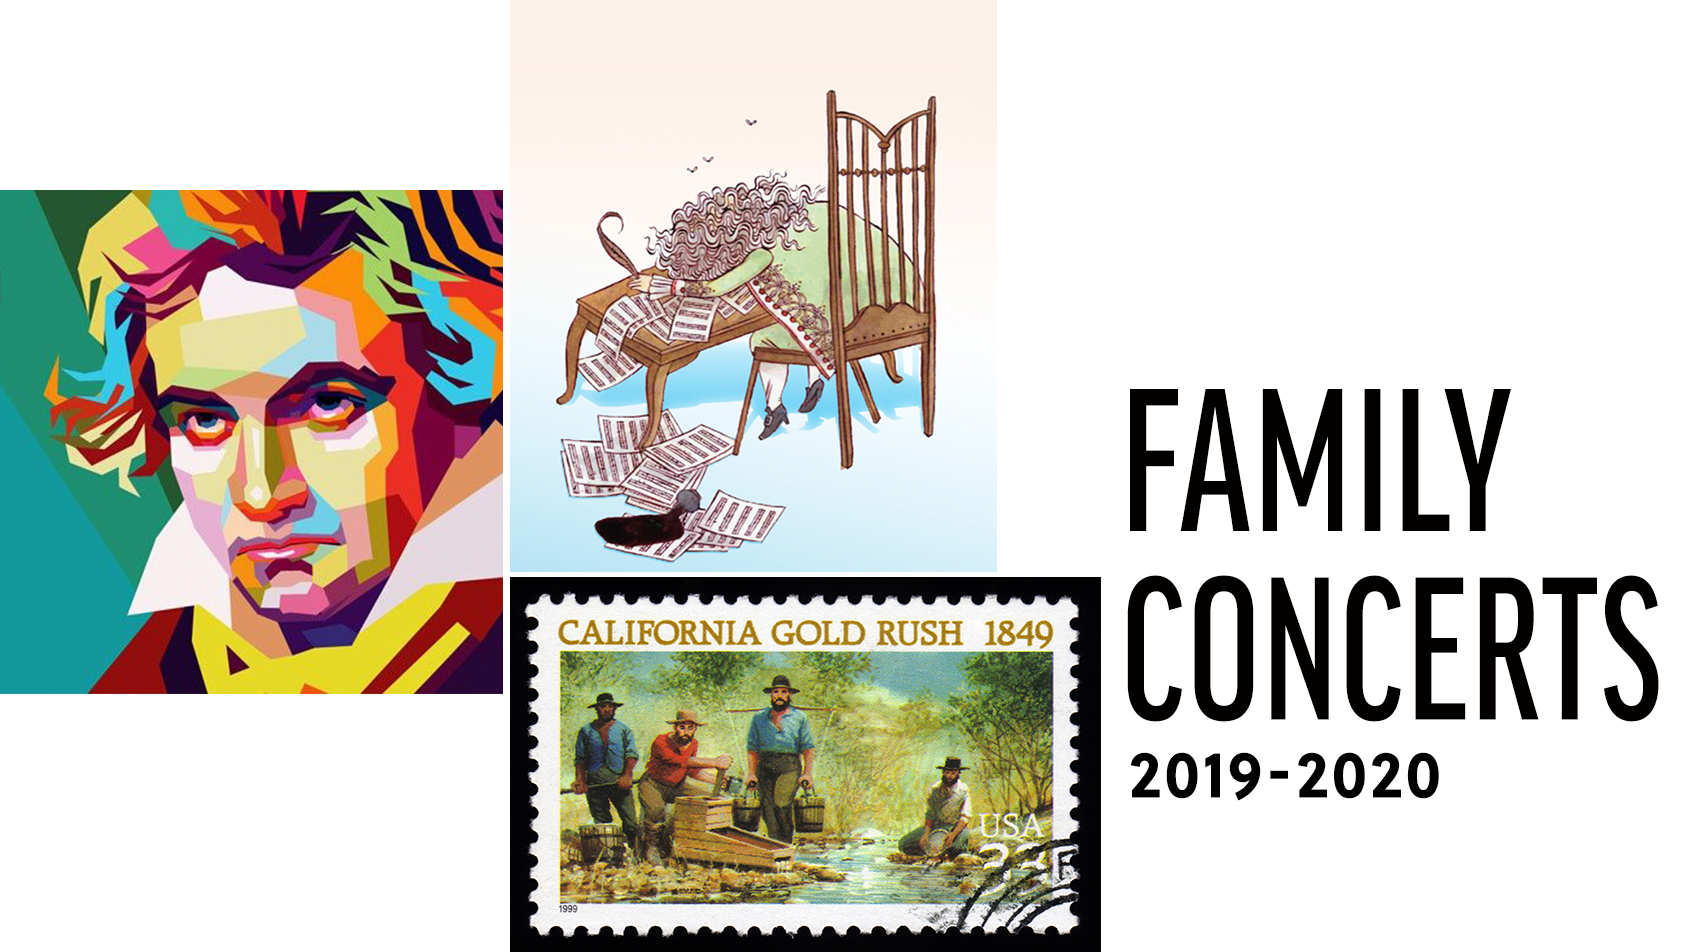 Family Concert Series 2019-20